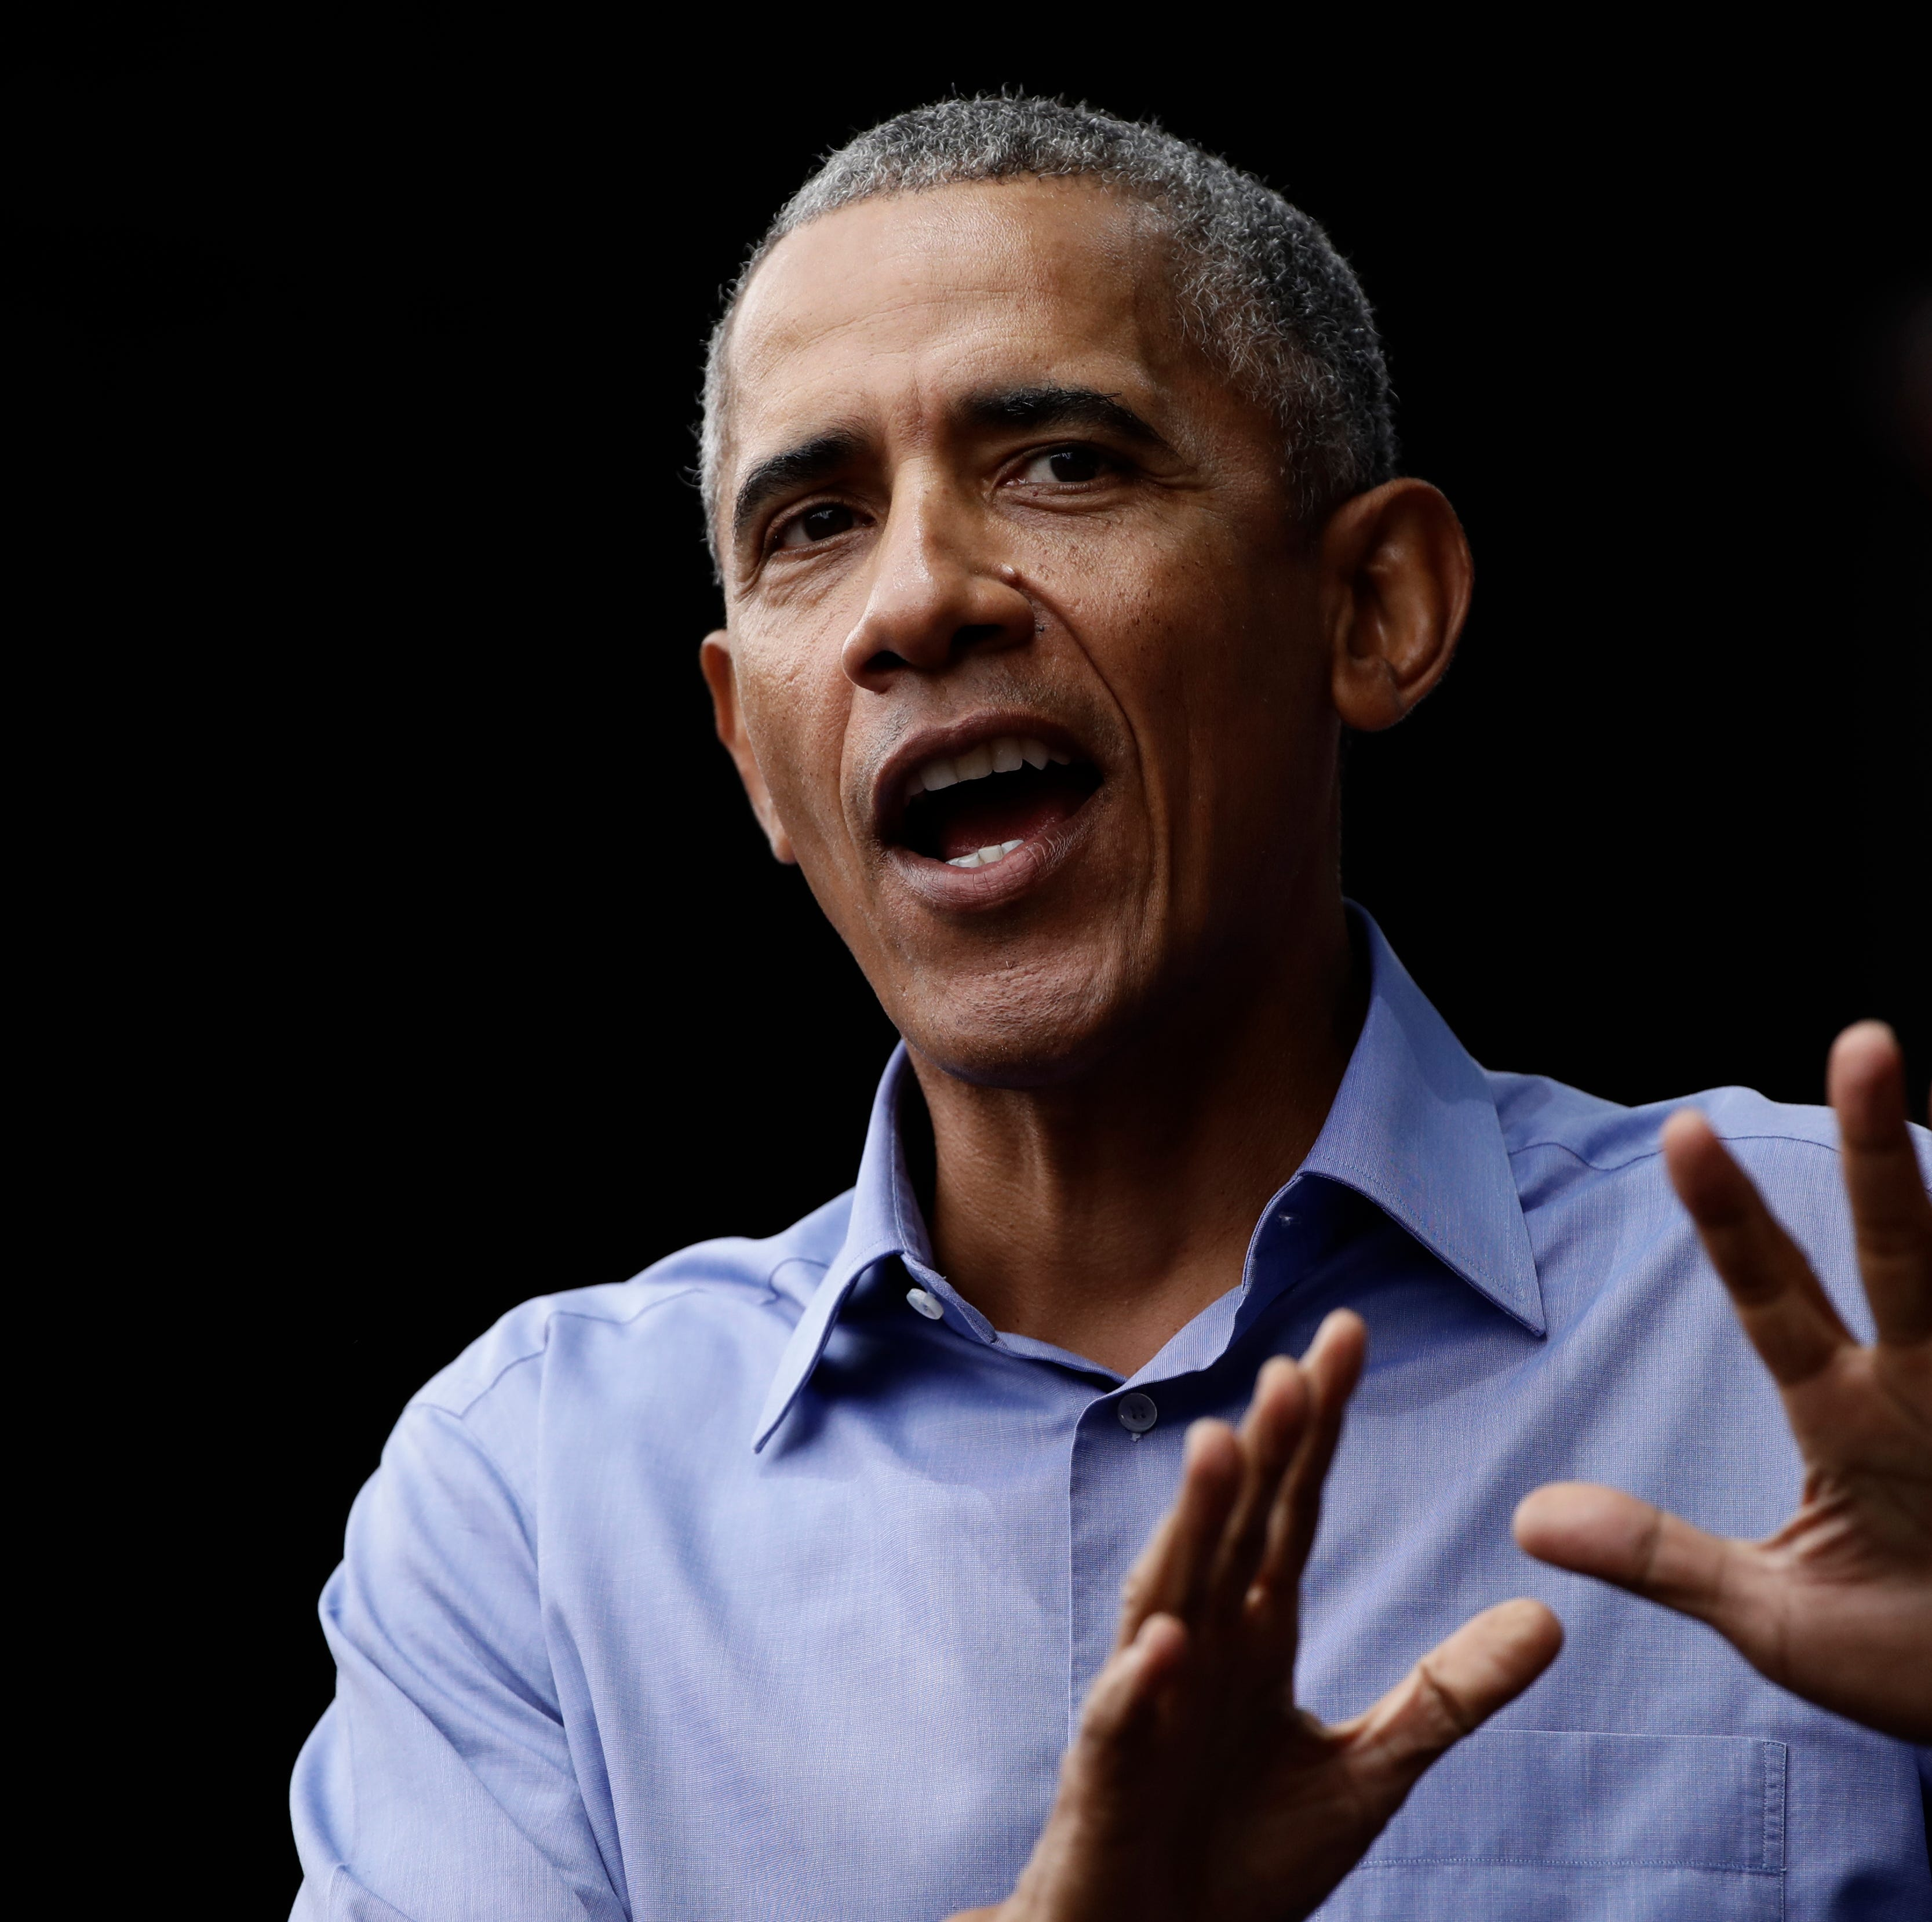 Live video: Former President Barack Obama leads campaign rally in Milwaukee for Democrats